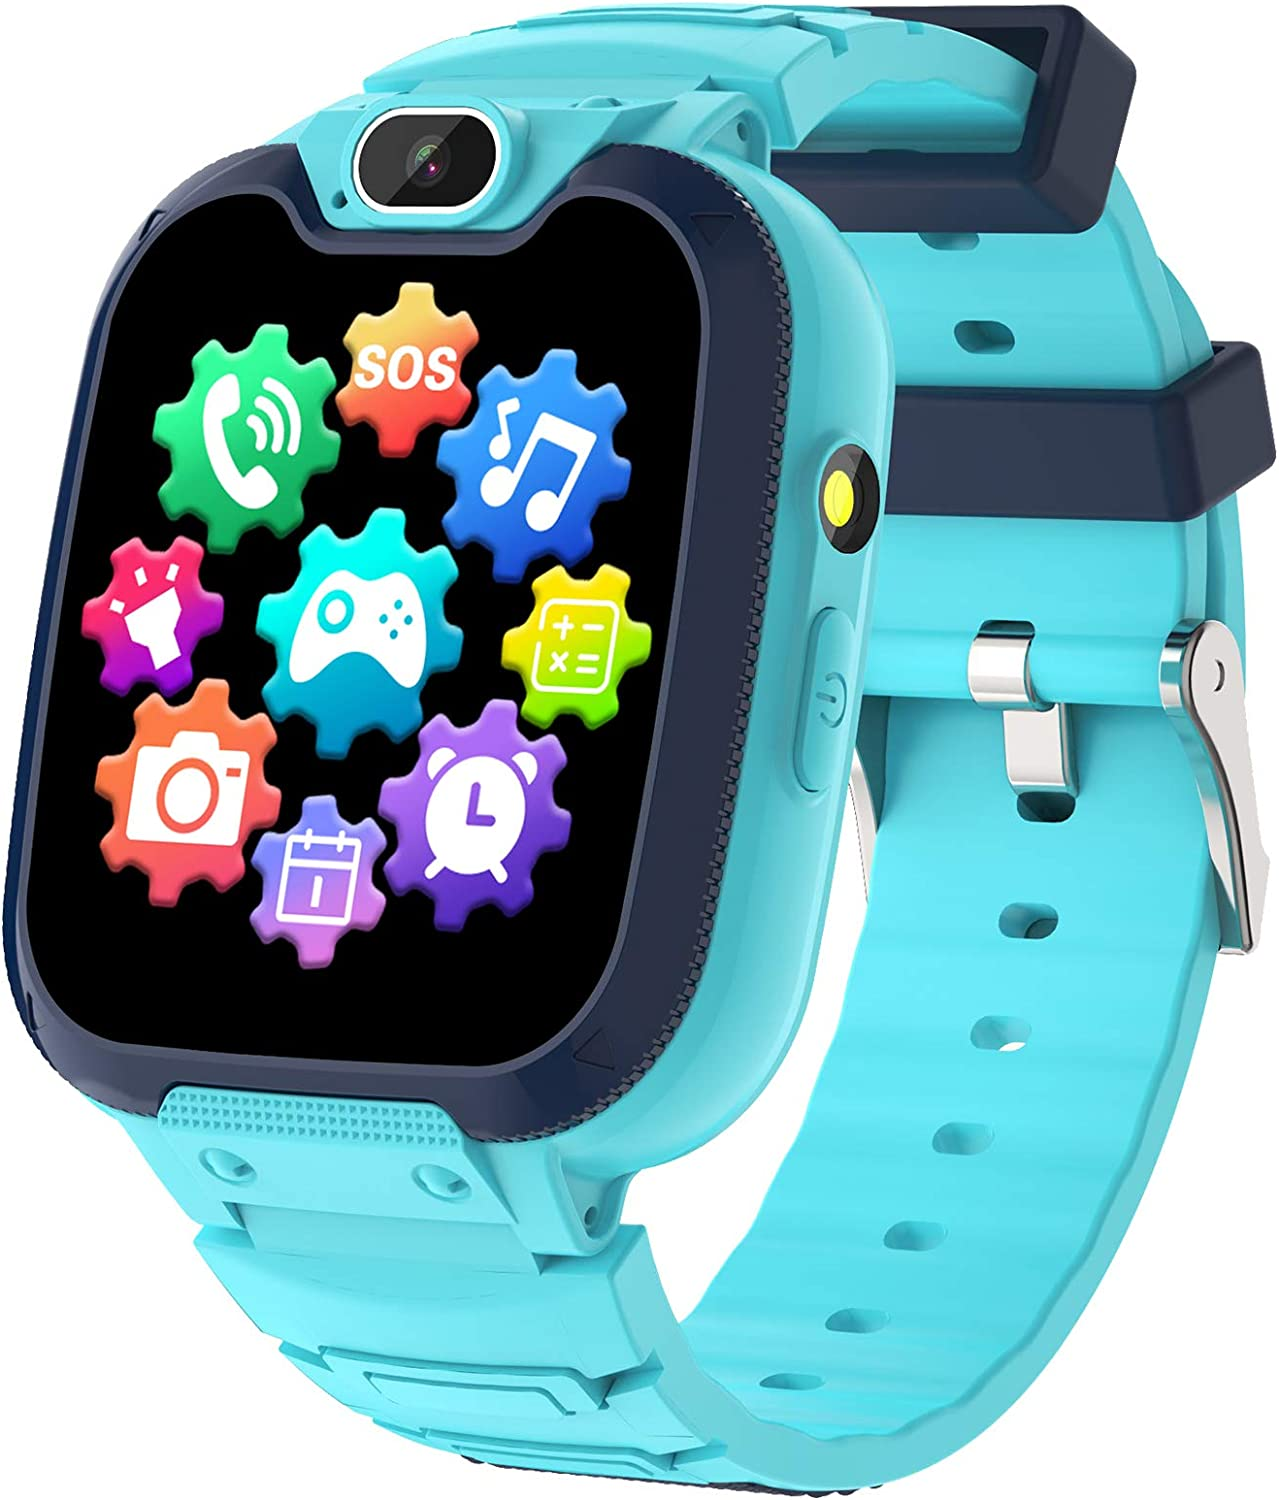 Kids Smart Watch for Boys Girls - Kids Phone Smartwatch with Calls 14 Games S0S Camera Video Music Player Clock Calculator Flashlight Touch Screen Children Smart Watch Gifts for Kids Age 4-12 (Blue)